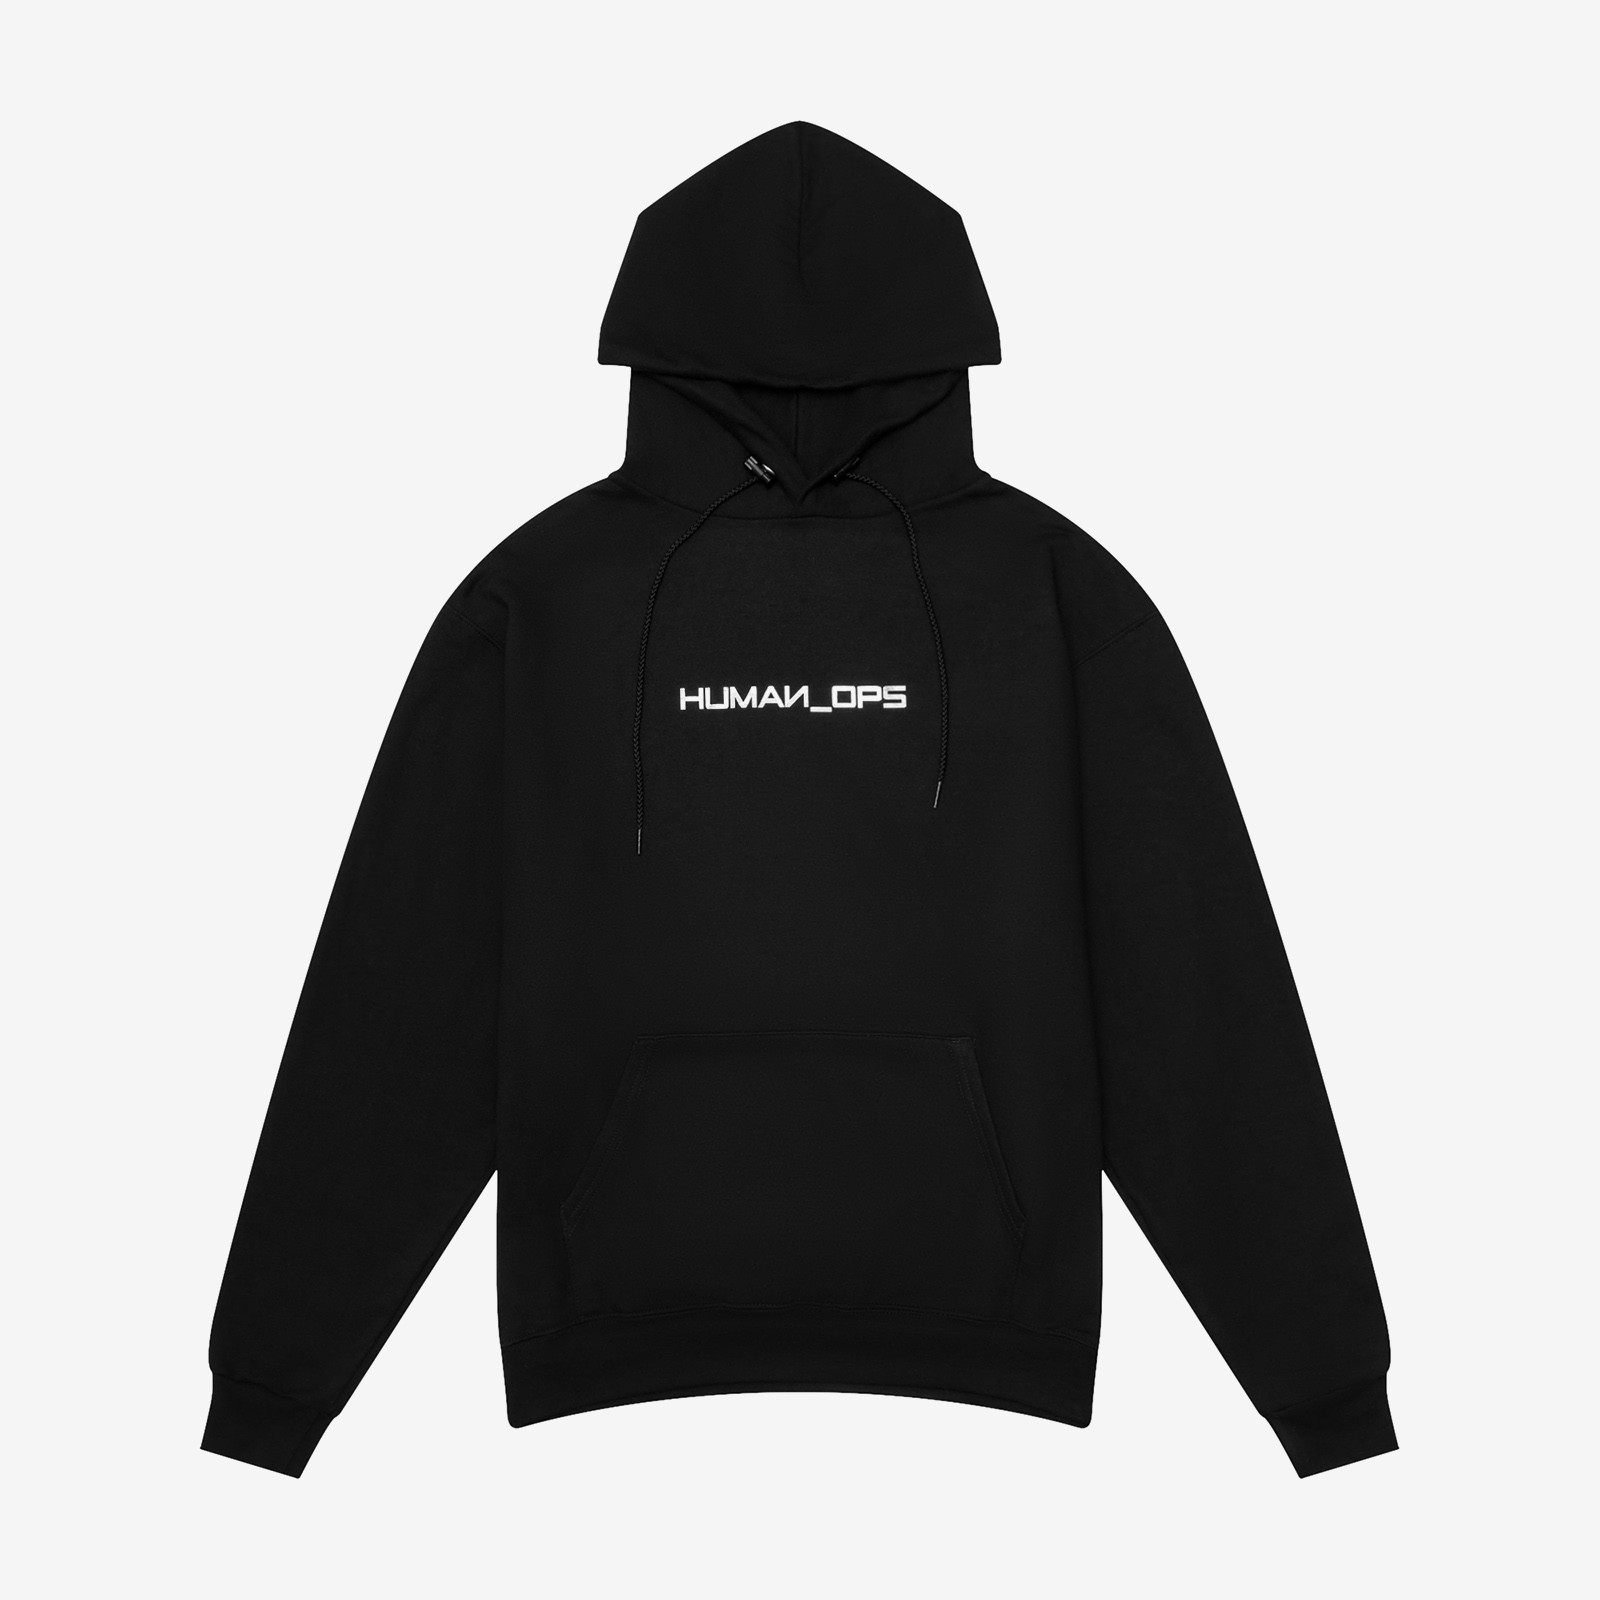 Hoodie flat lay product picture